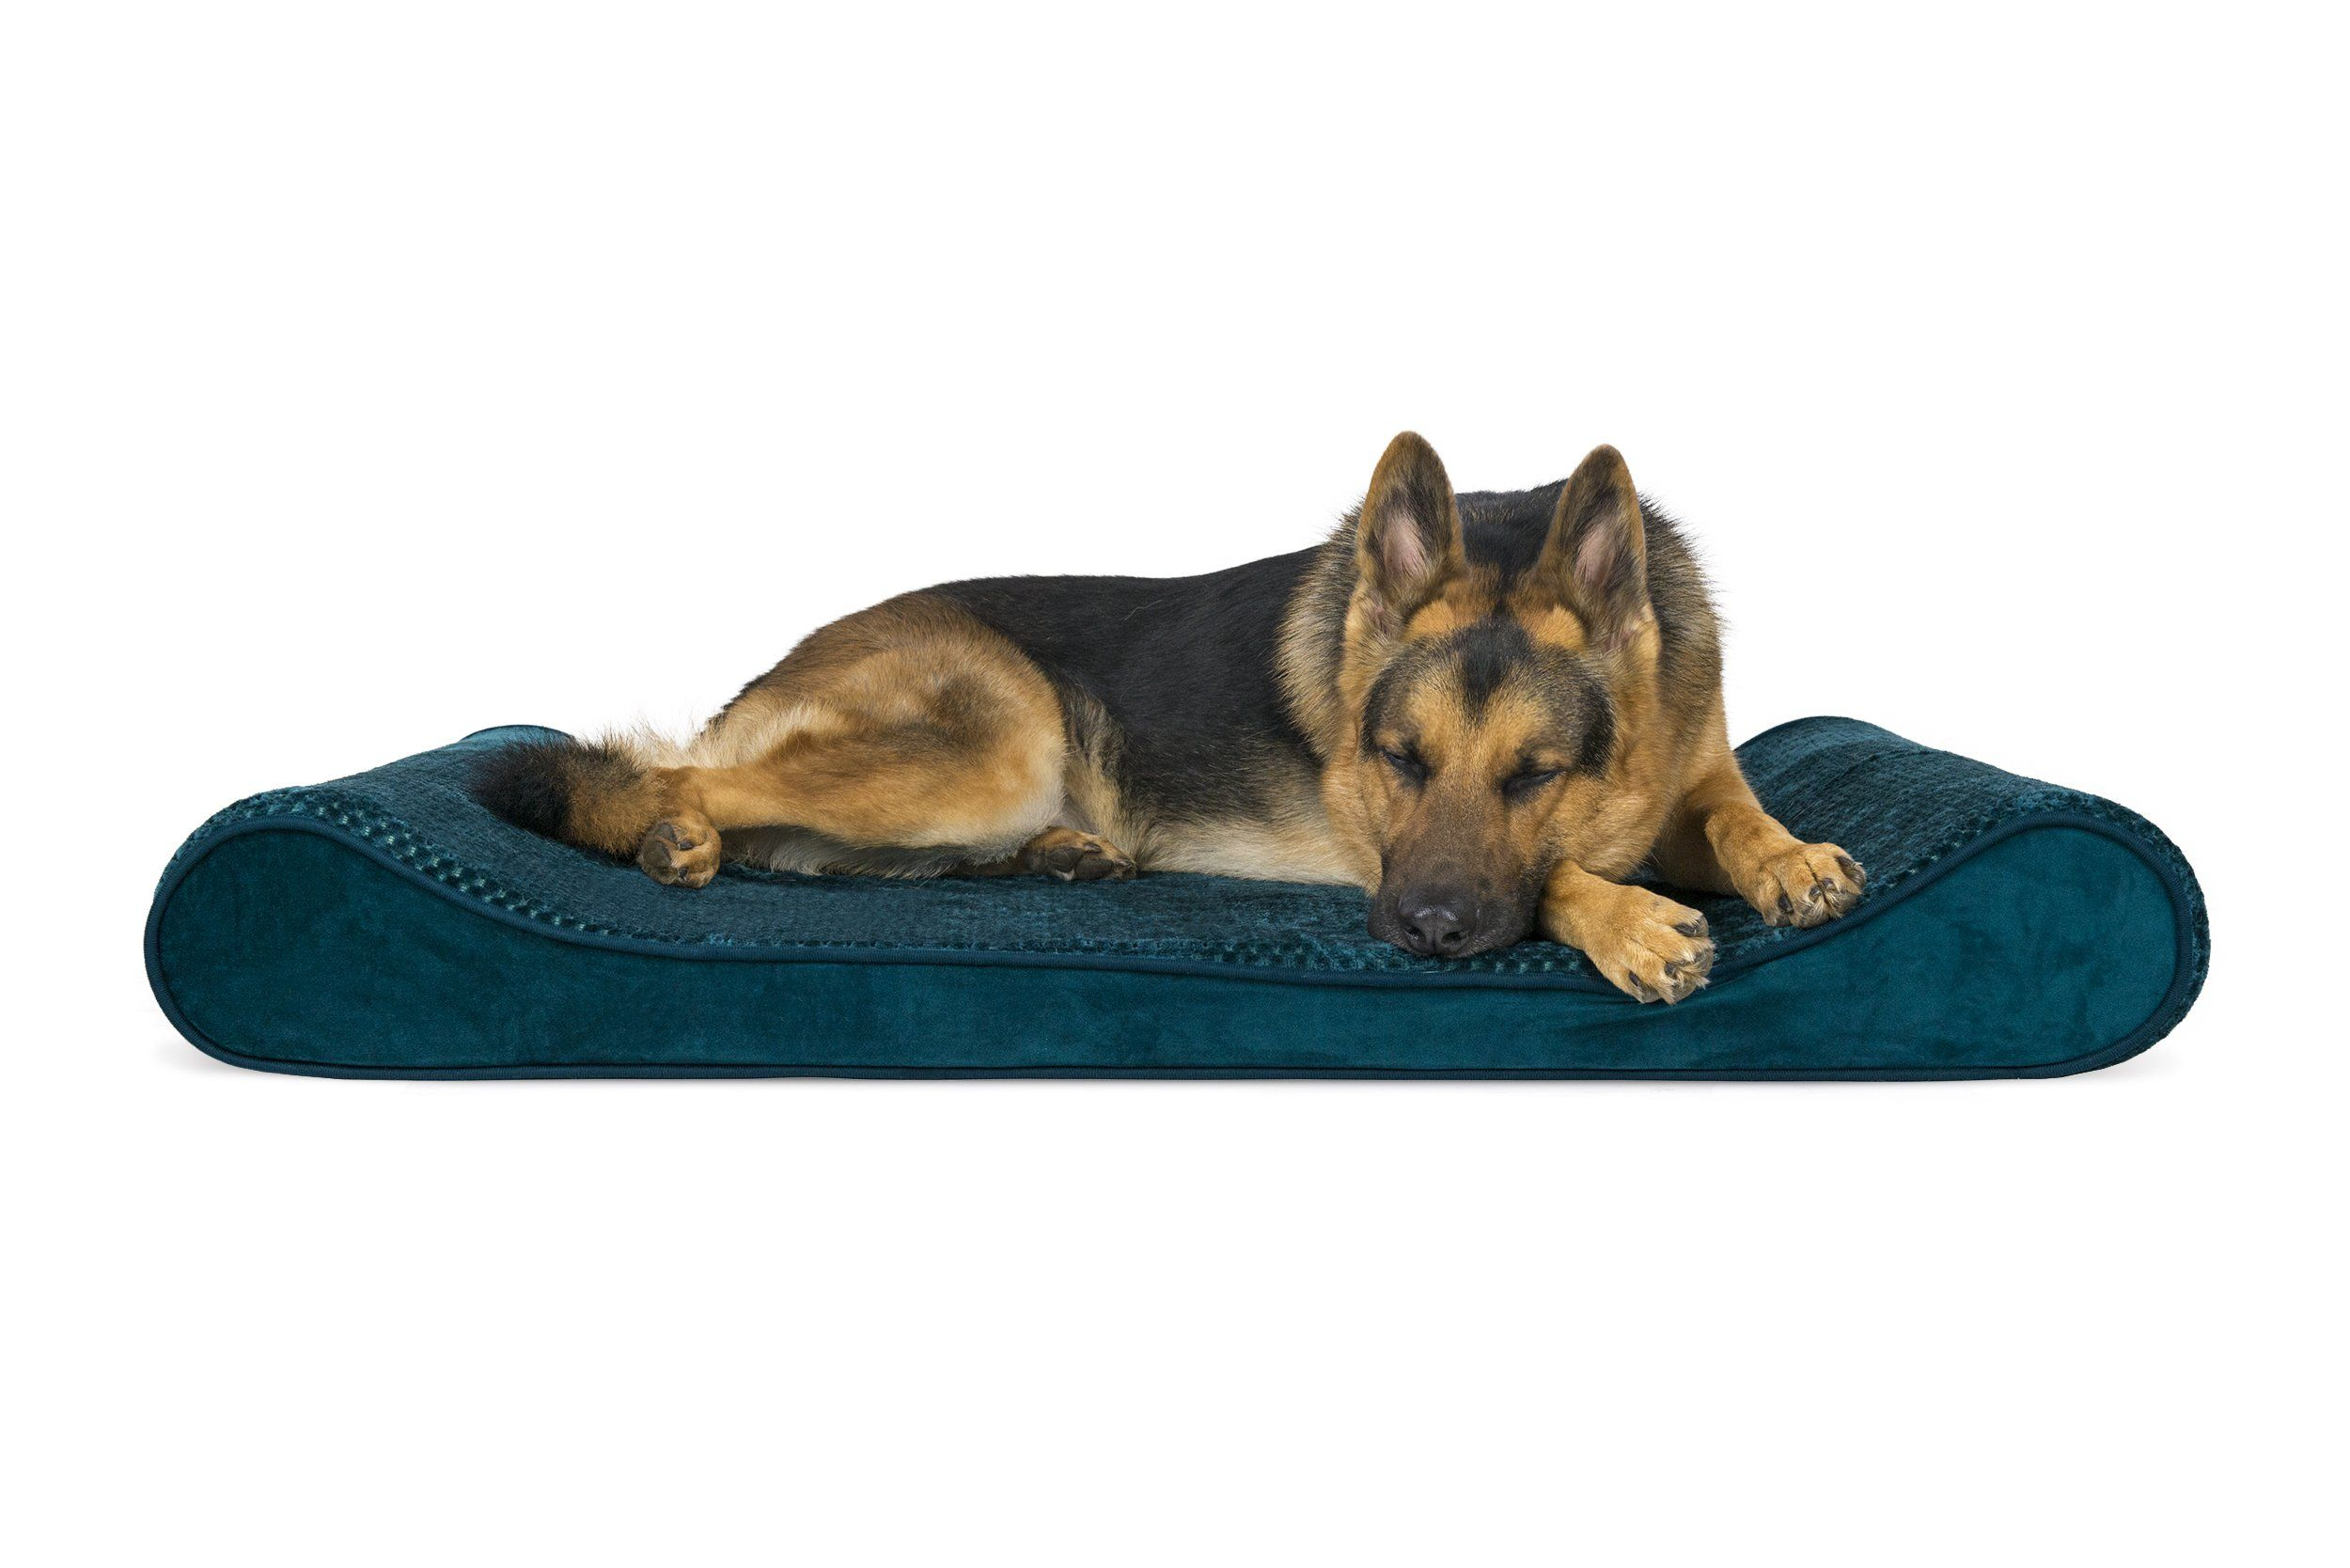 Furhaven Orthopedic Plush And Velvet Luxe Lounger Pet Bed For Dogs And Cats Spruce Blue Jumbo See This Great P Dog Pet Beds Orthopedic Dog Bed Chaise Dog Bed